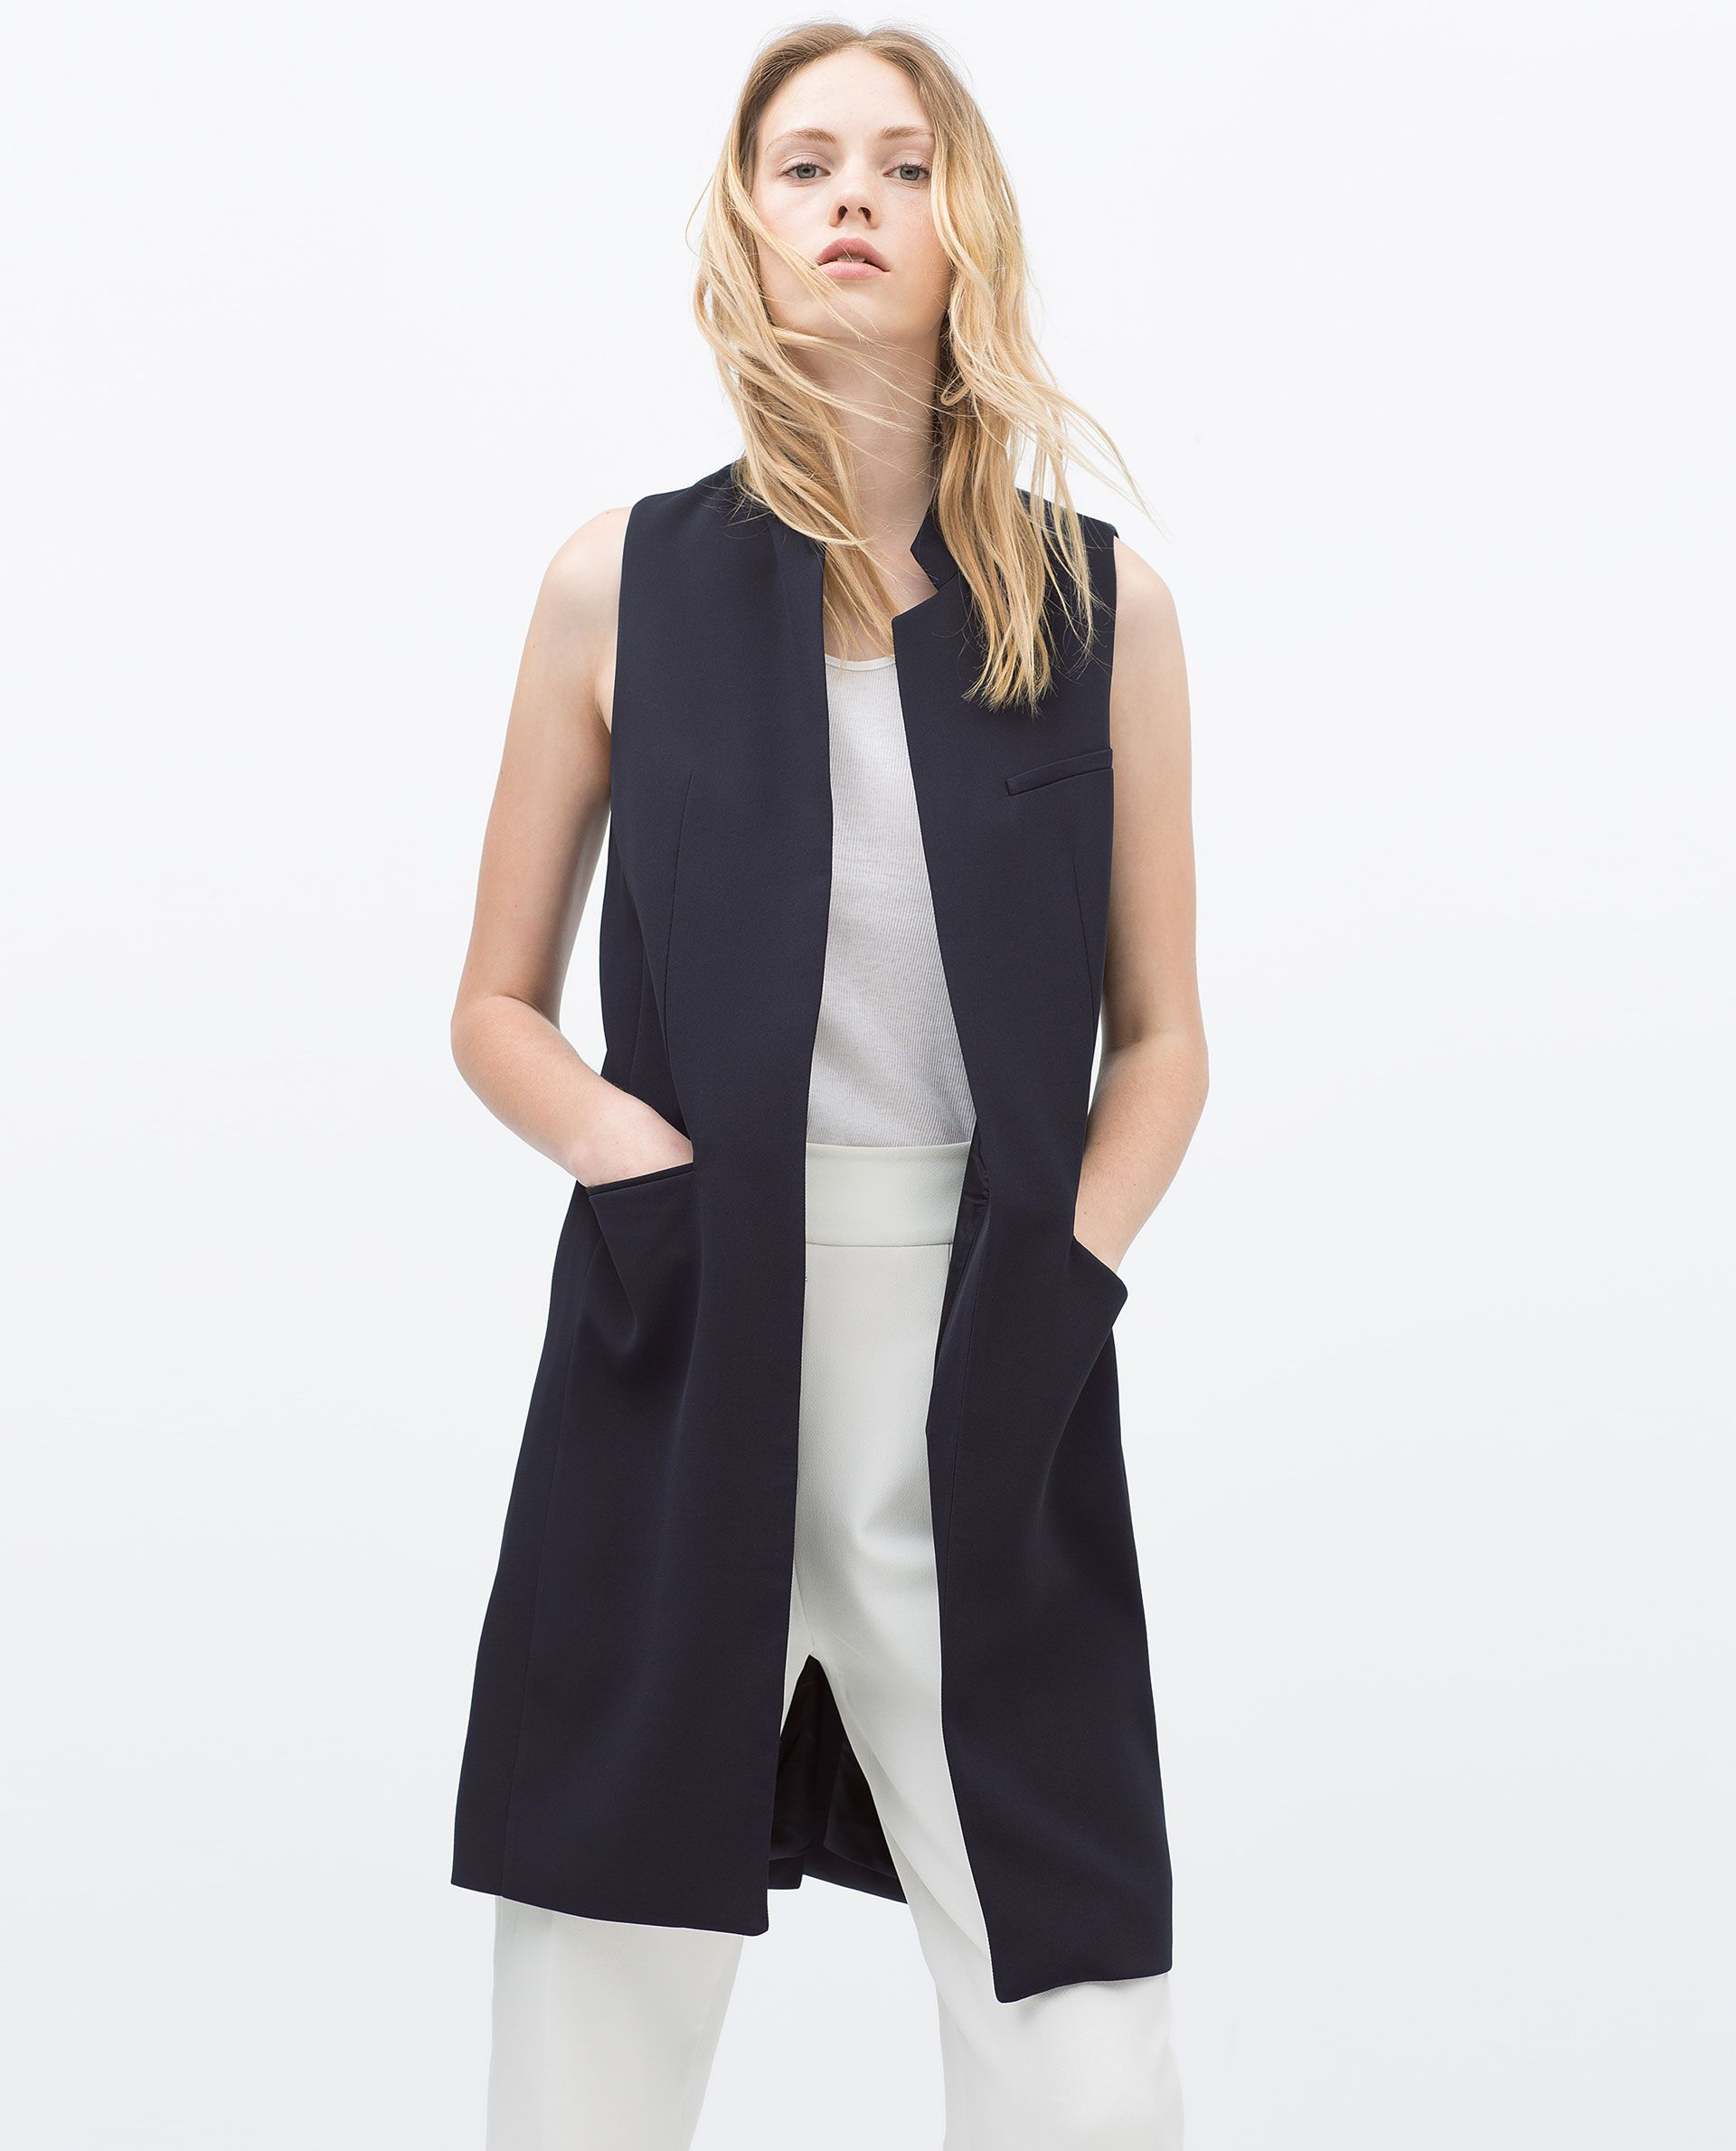 db55c9d24c0 LONG TAILORED WAISTCOAT - View all - Jacket - WOMAN